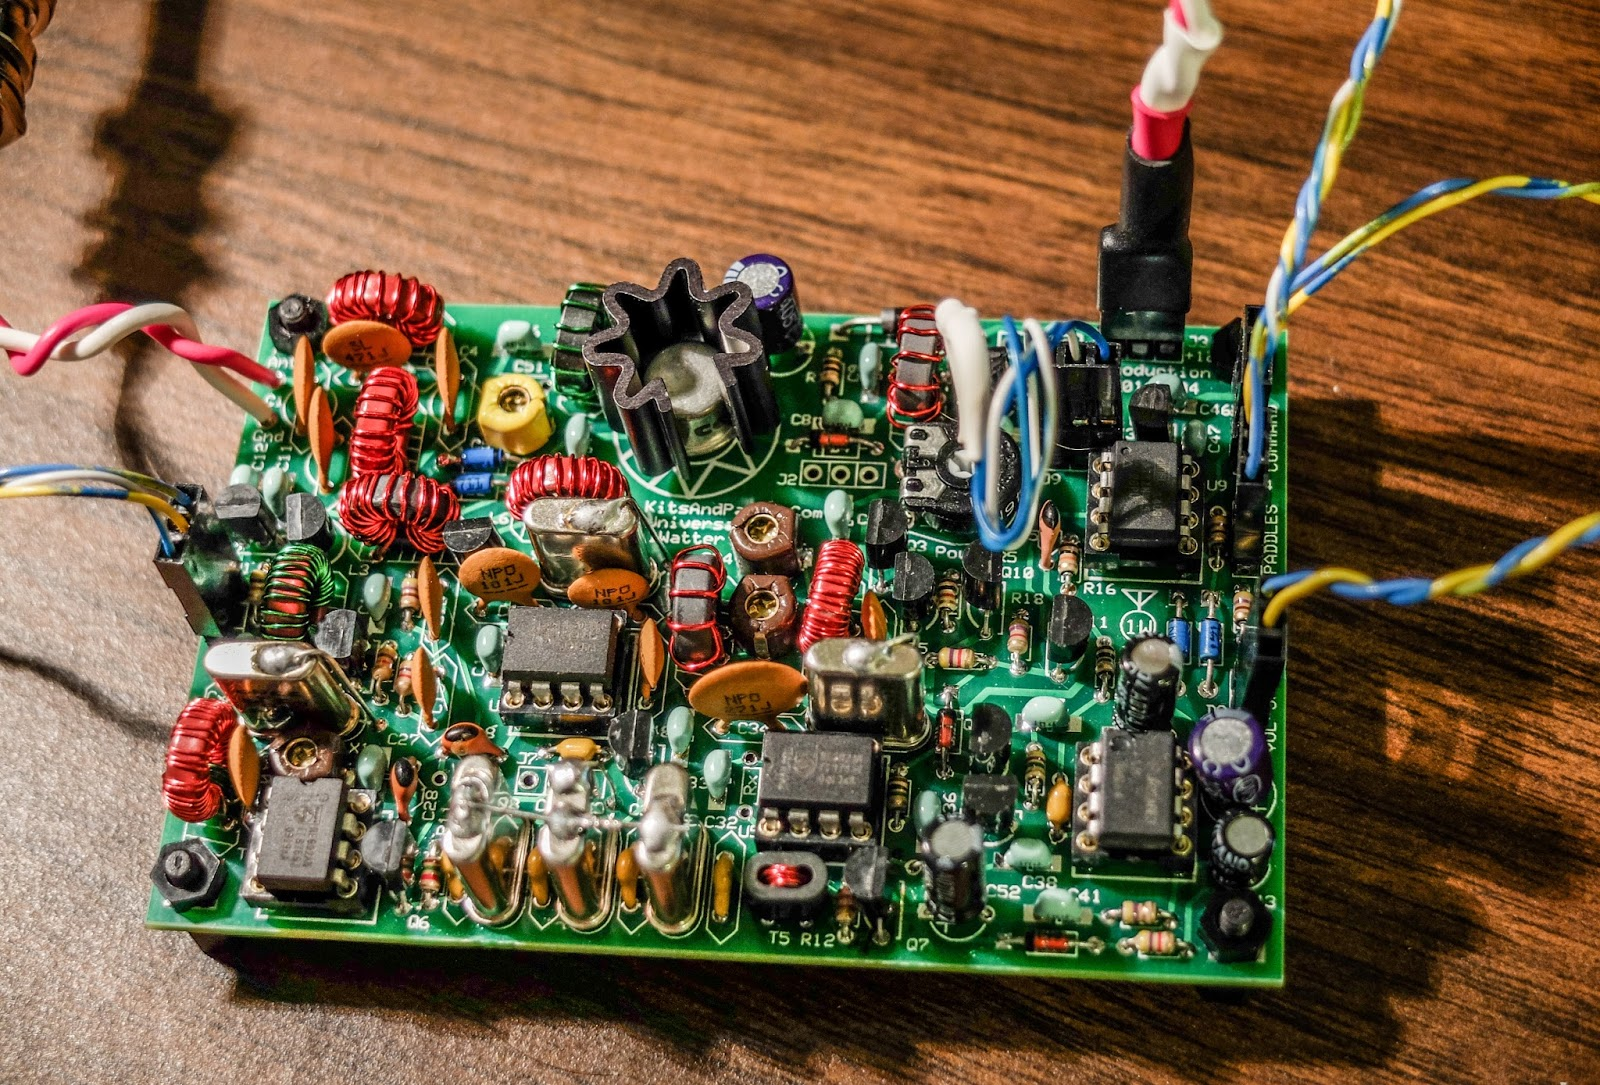 Ham Radio Qrp March 2016 Parallel Lc Circuit Http Electronicsclubforengineersblogspotcom Ready To Transmit